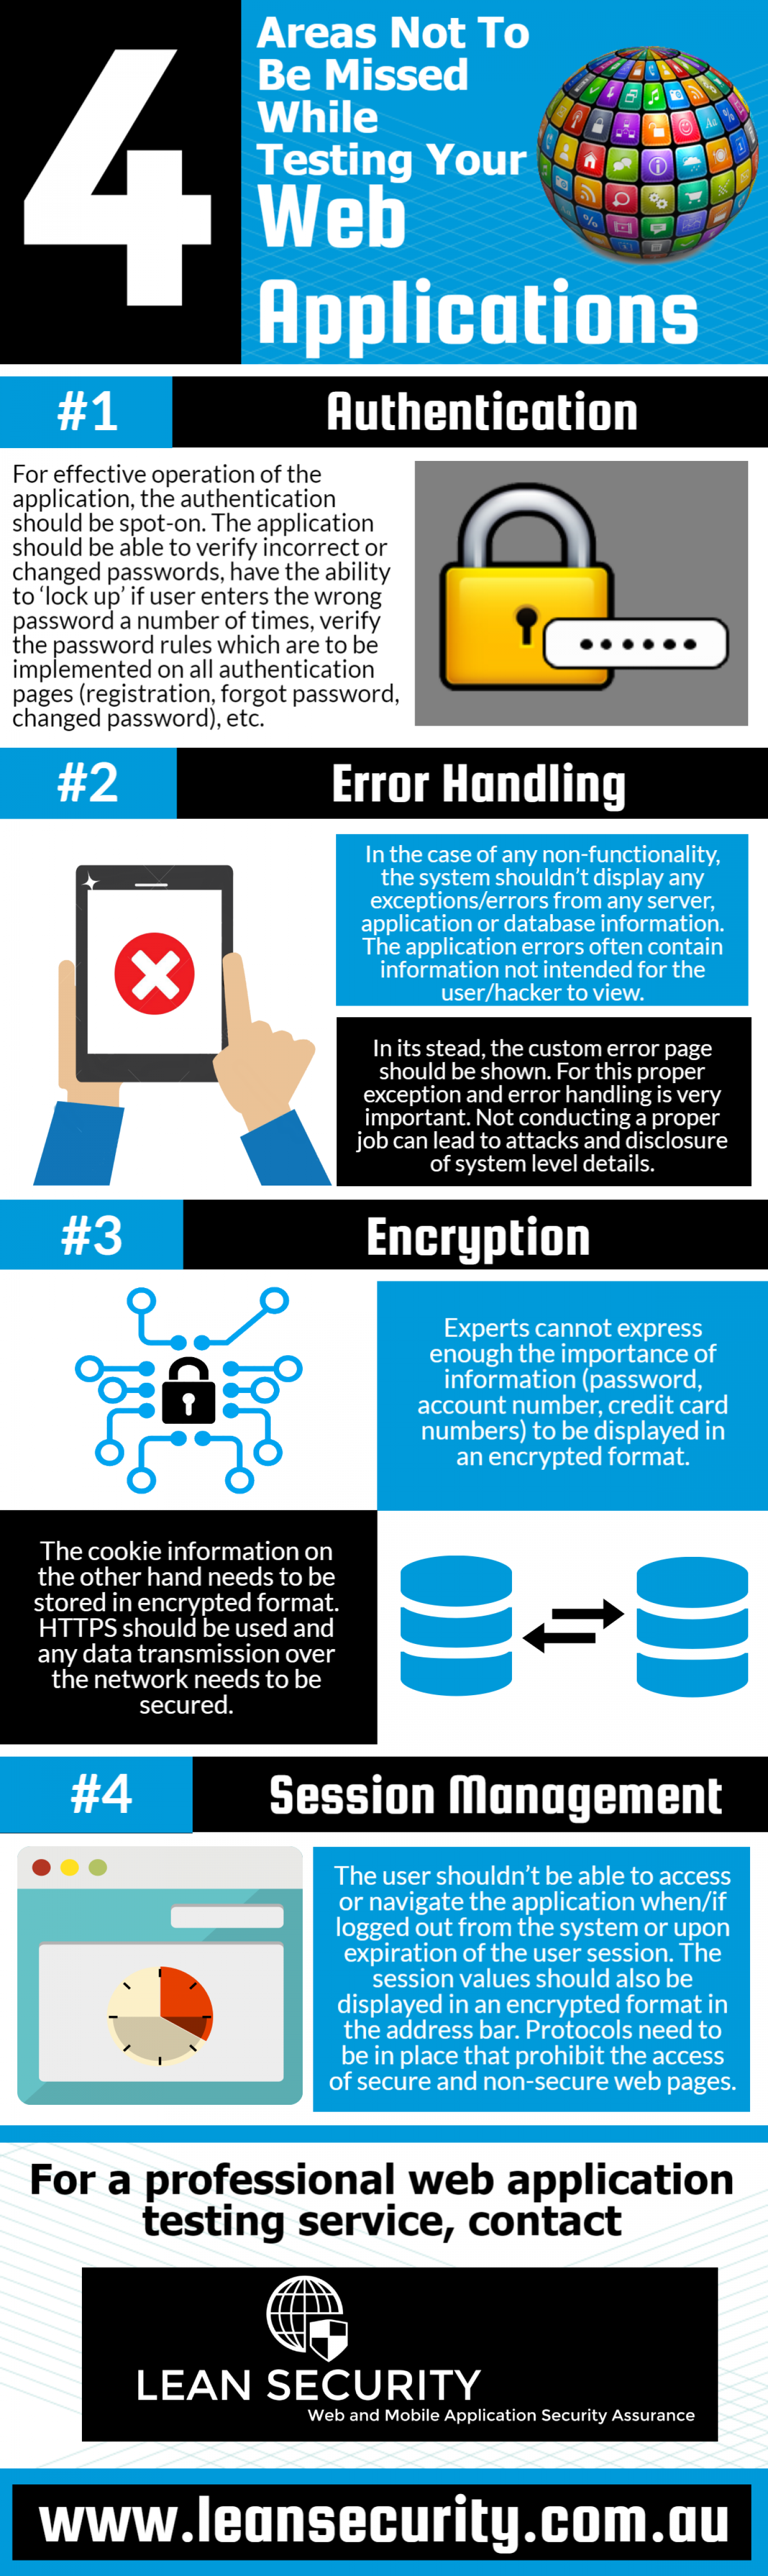 4 areas not to be missed while testing your web applications Infographic